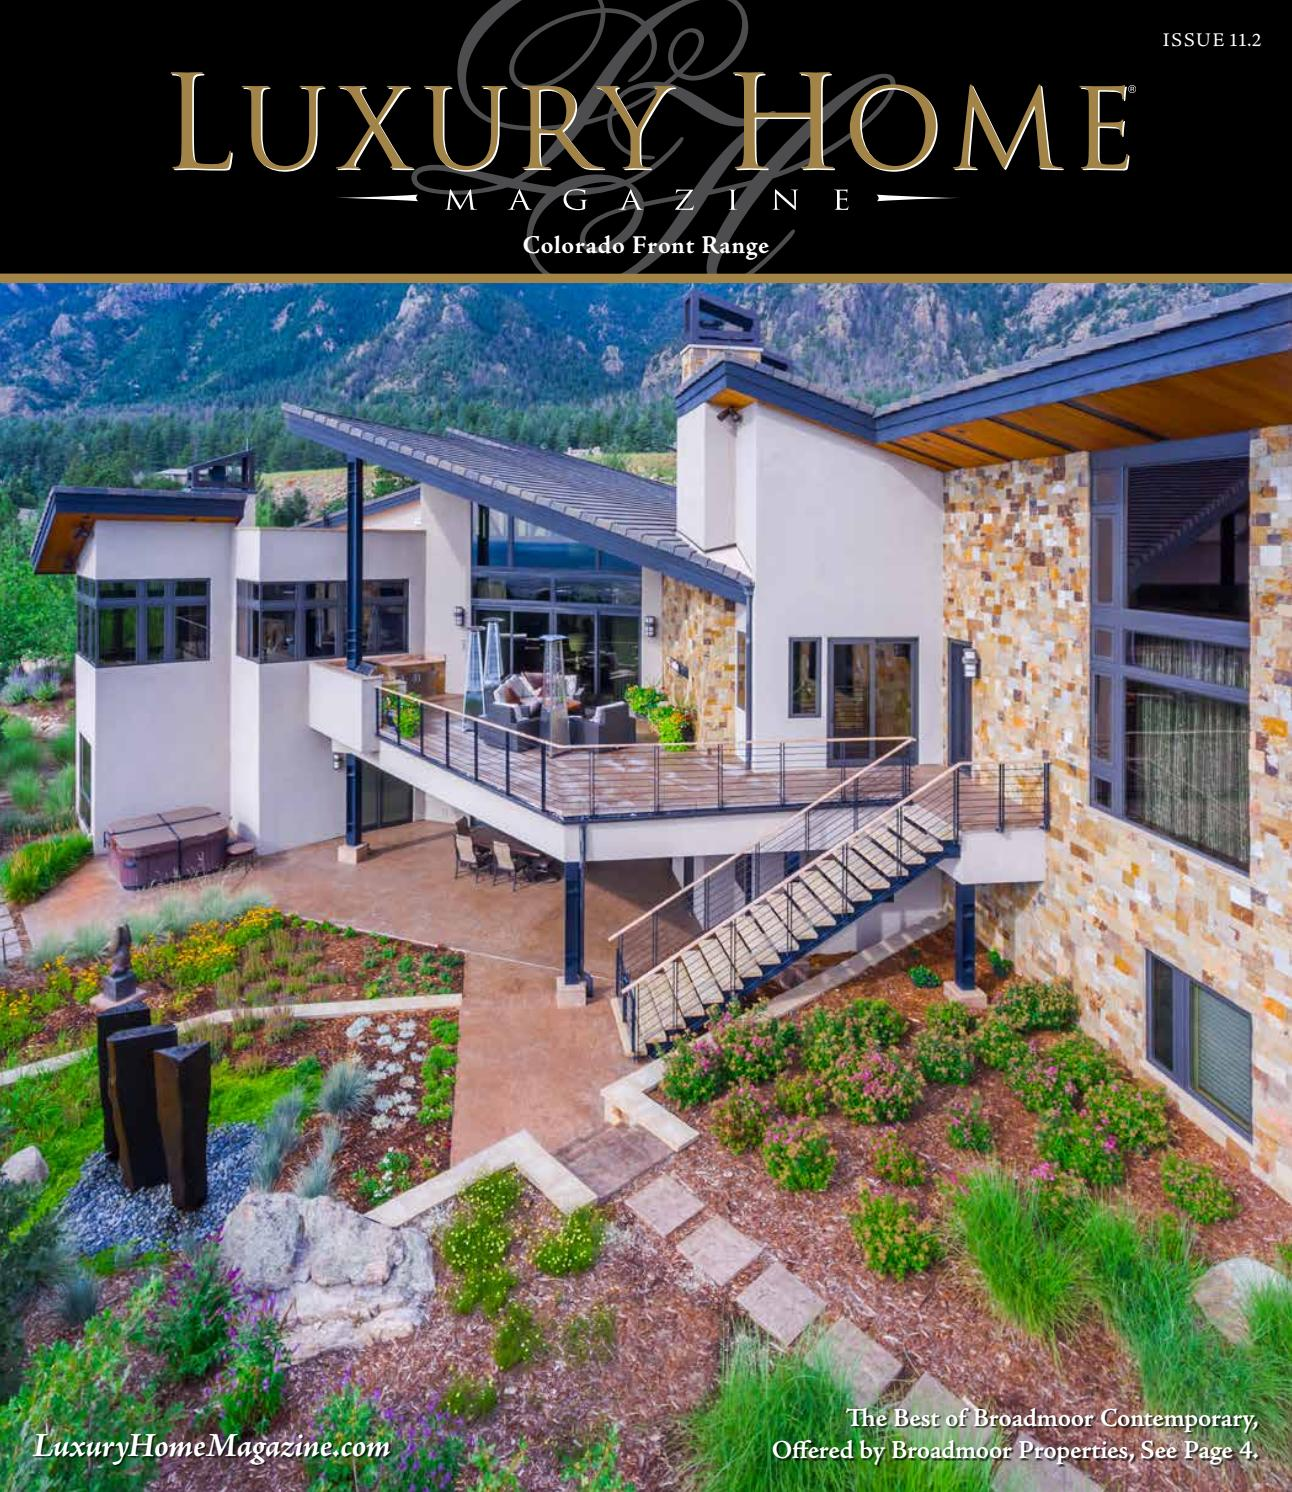 Luxury home magazine colorado front range issue 11 2 by for Front of house magazine